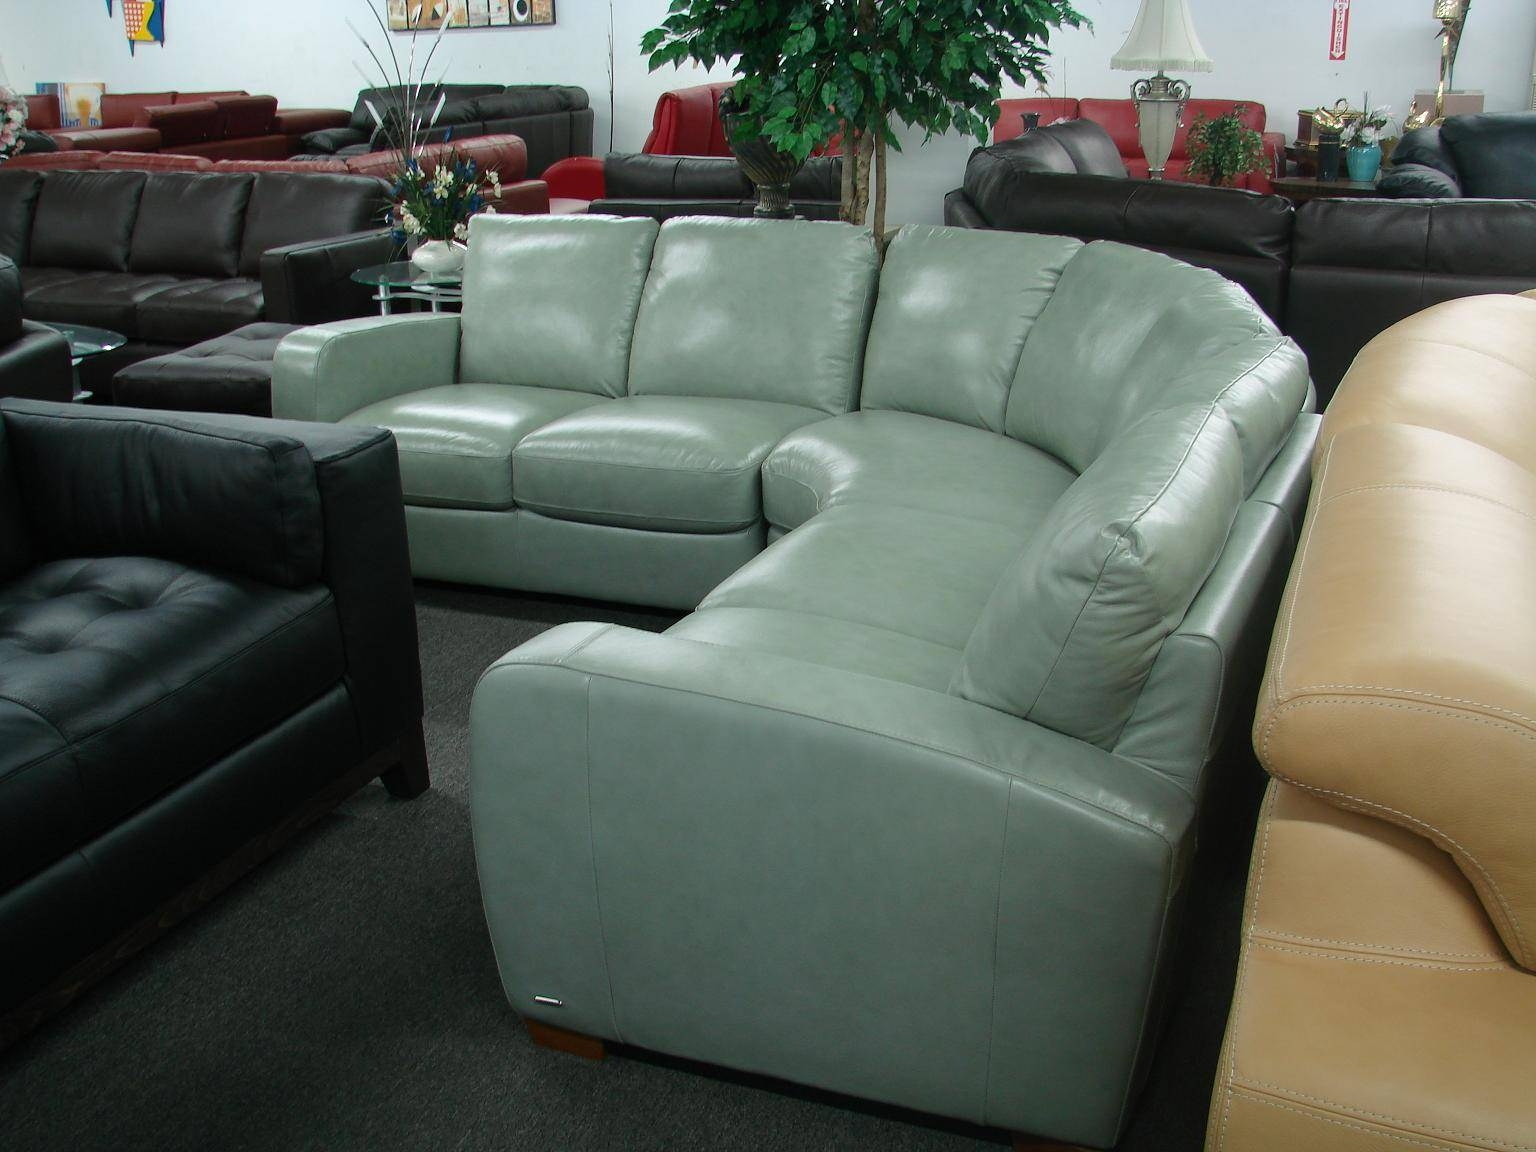 Sofas Center : Leather Sofas On Sale For Home Custom Sofa Design regarding Leather Sofa Sectionals for Sale (Image 23 of 30)